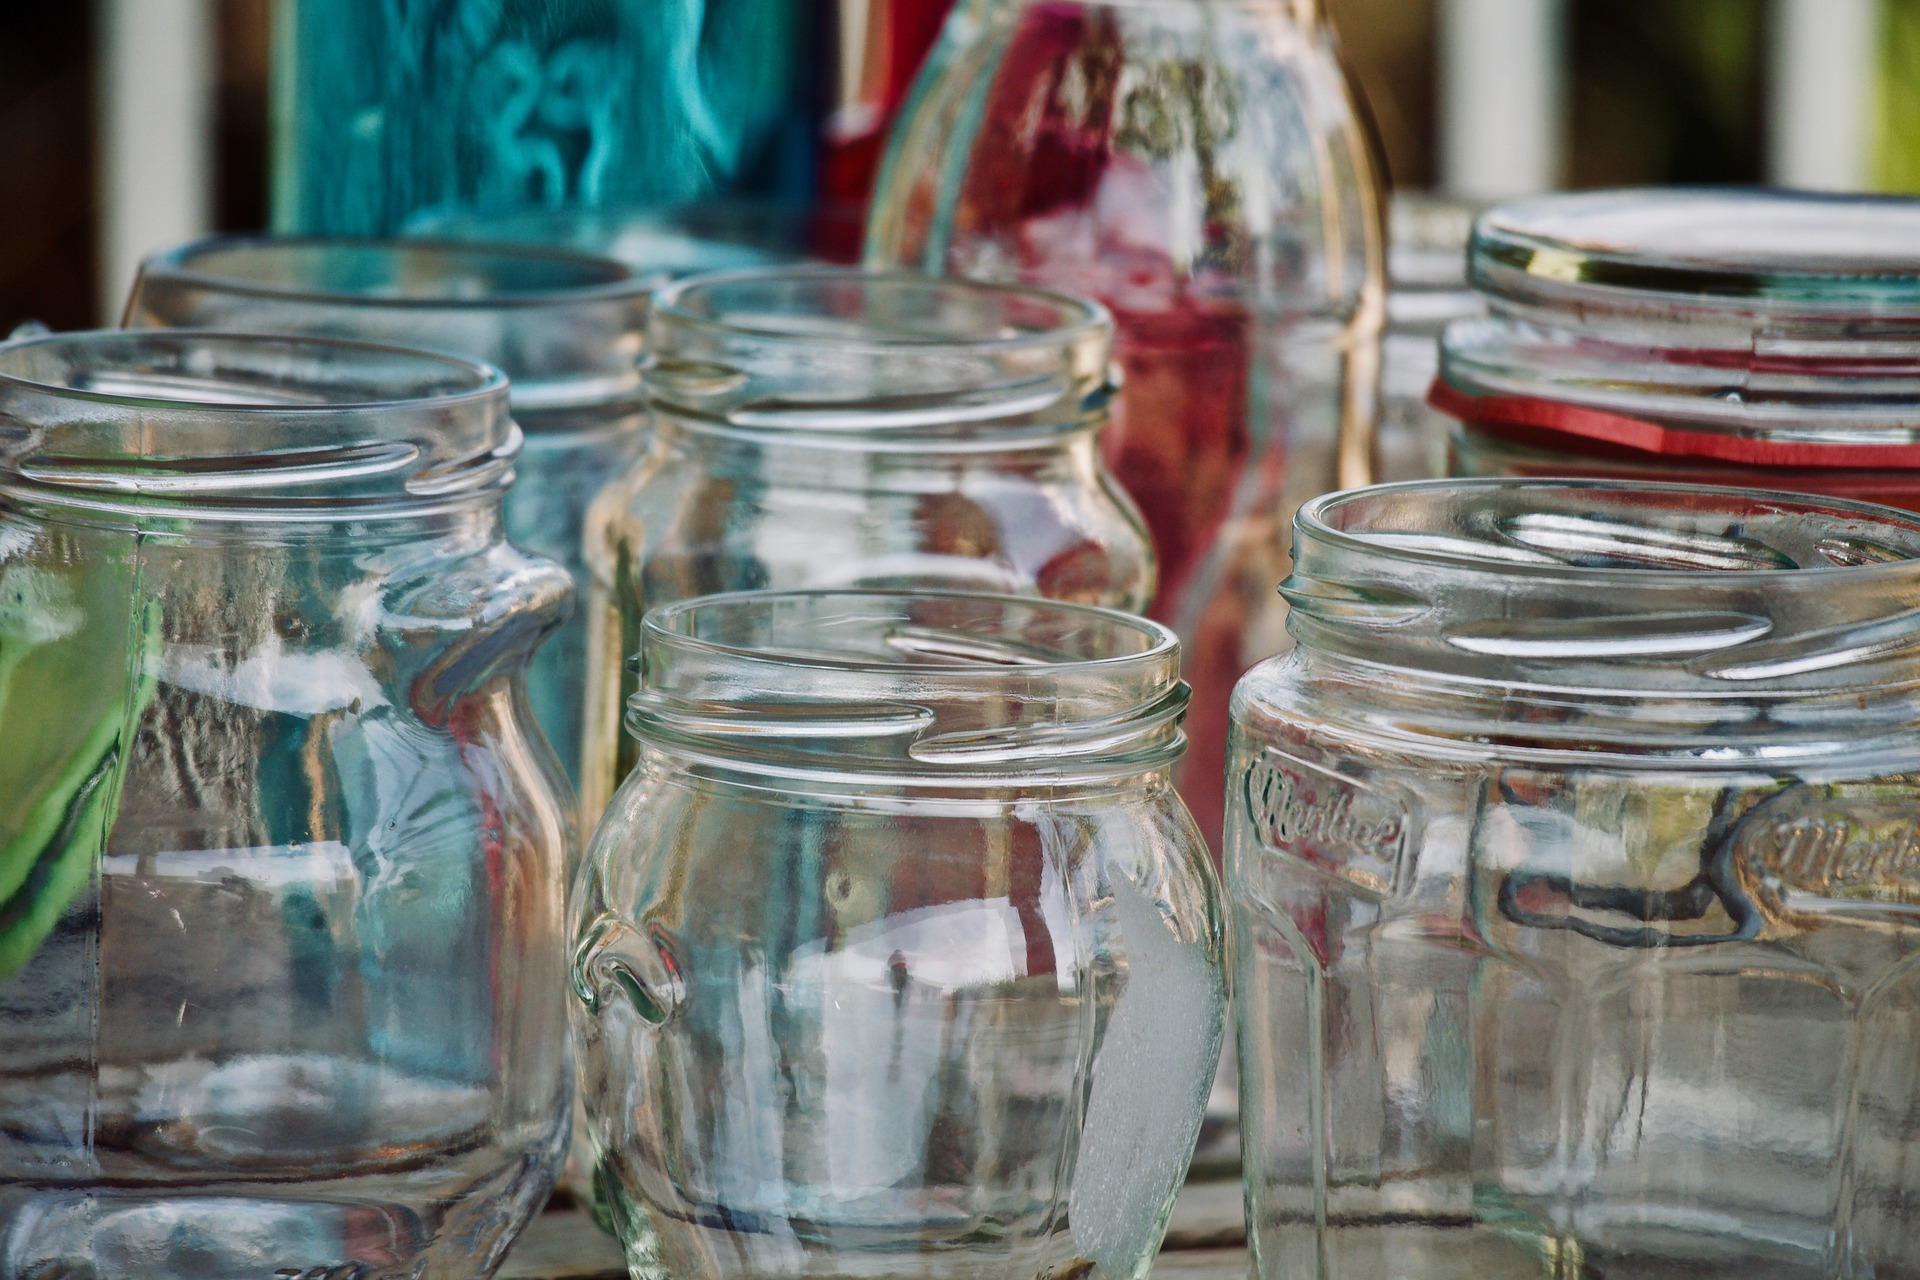 Zero-waste warriors: meet the people whose household rubbish fits in a jam jar